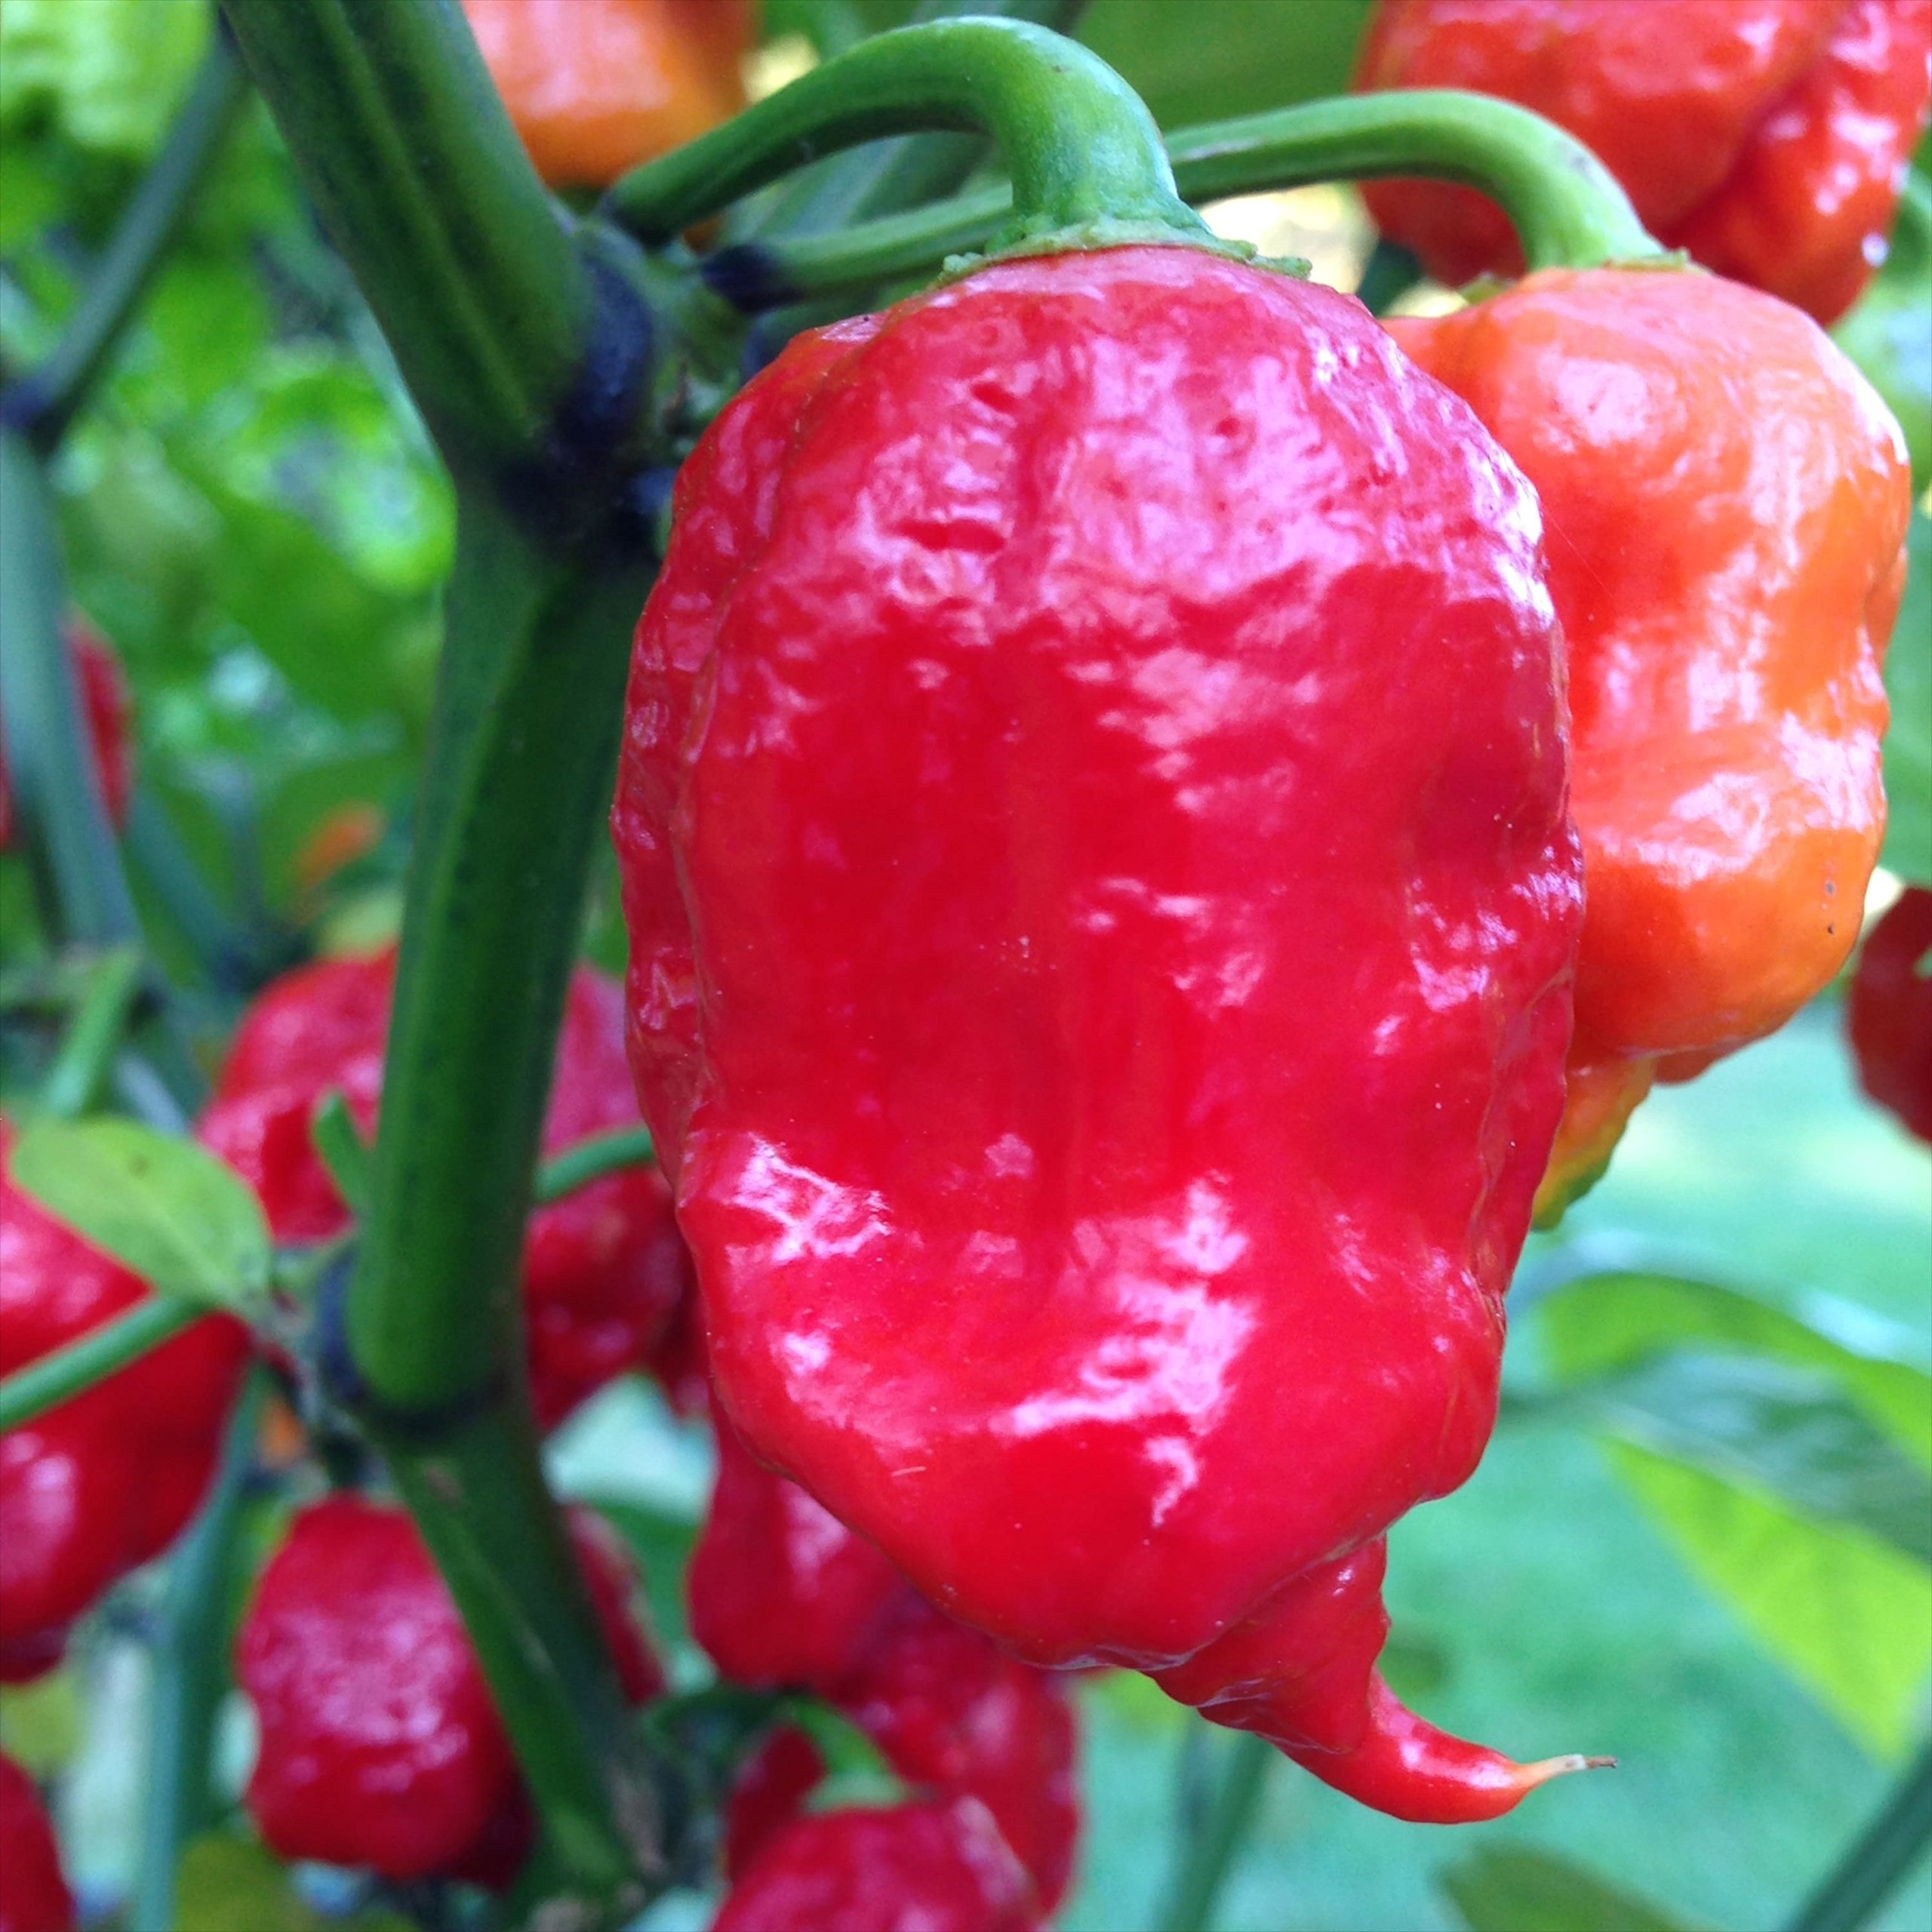 Wayland Chiles World's Hottest Chile Collection Grown in the USA, USDA Organic, 70 Seeds - 4 Varieties